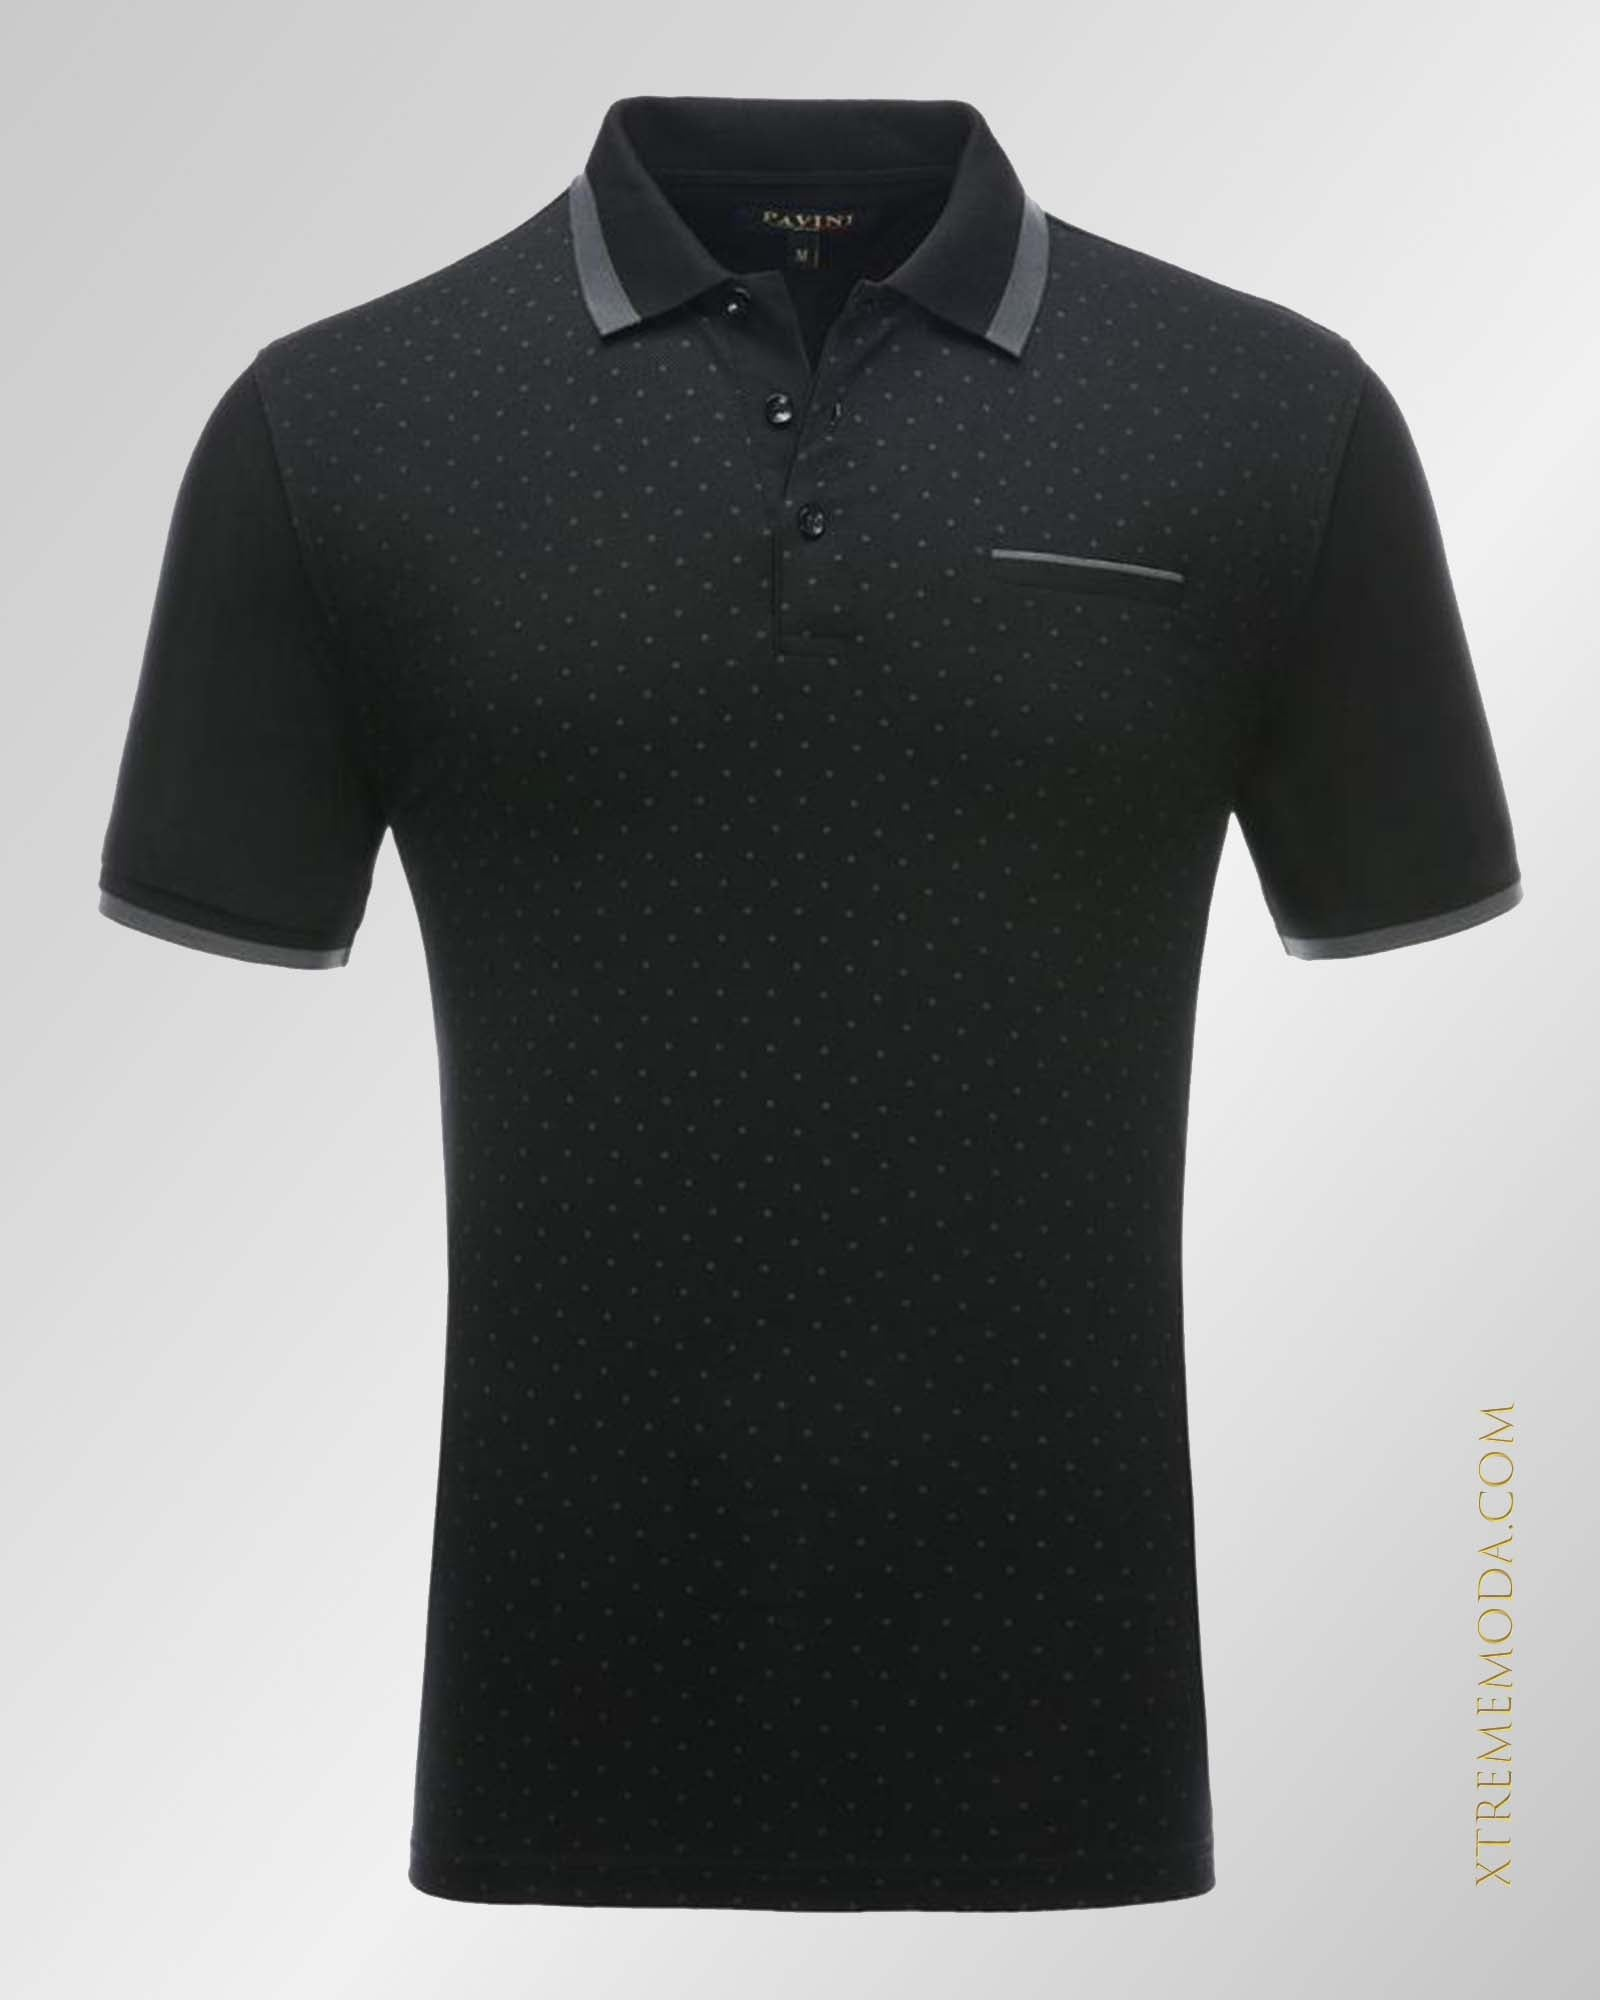 Cotton polka-Dot polo shirt Blk/gry